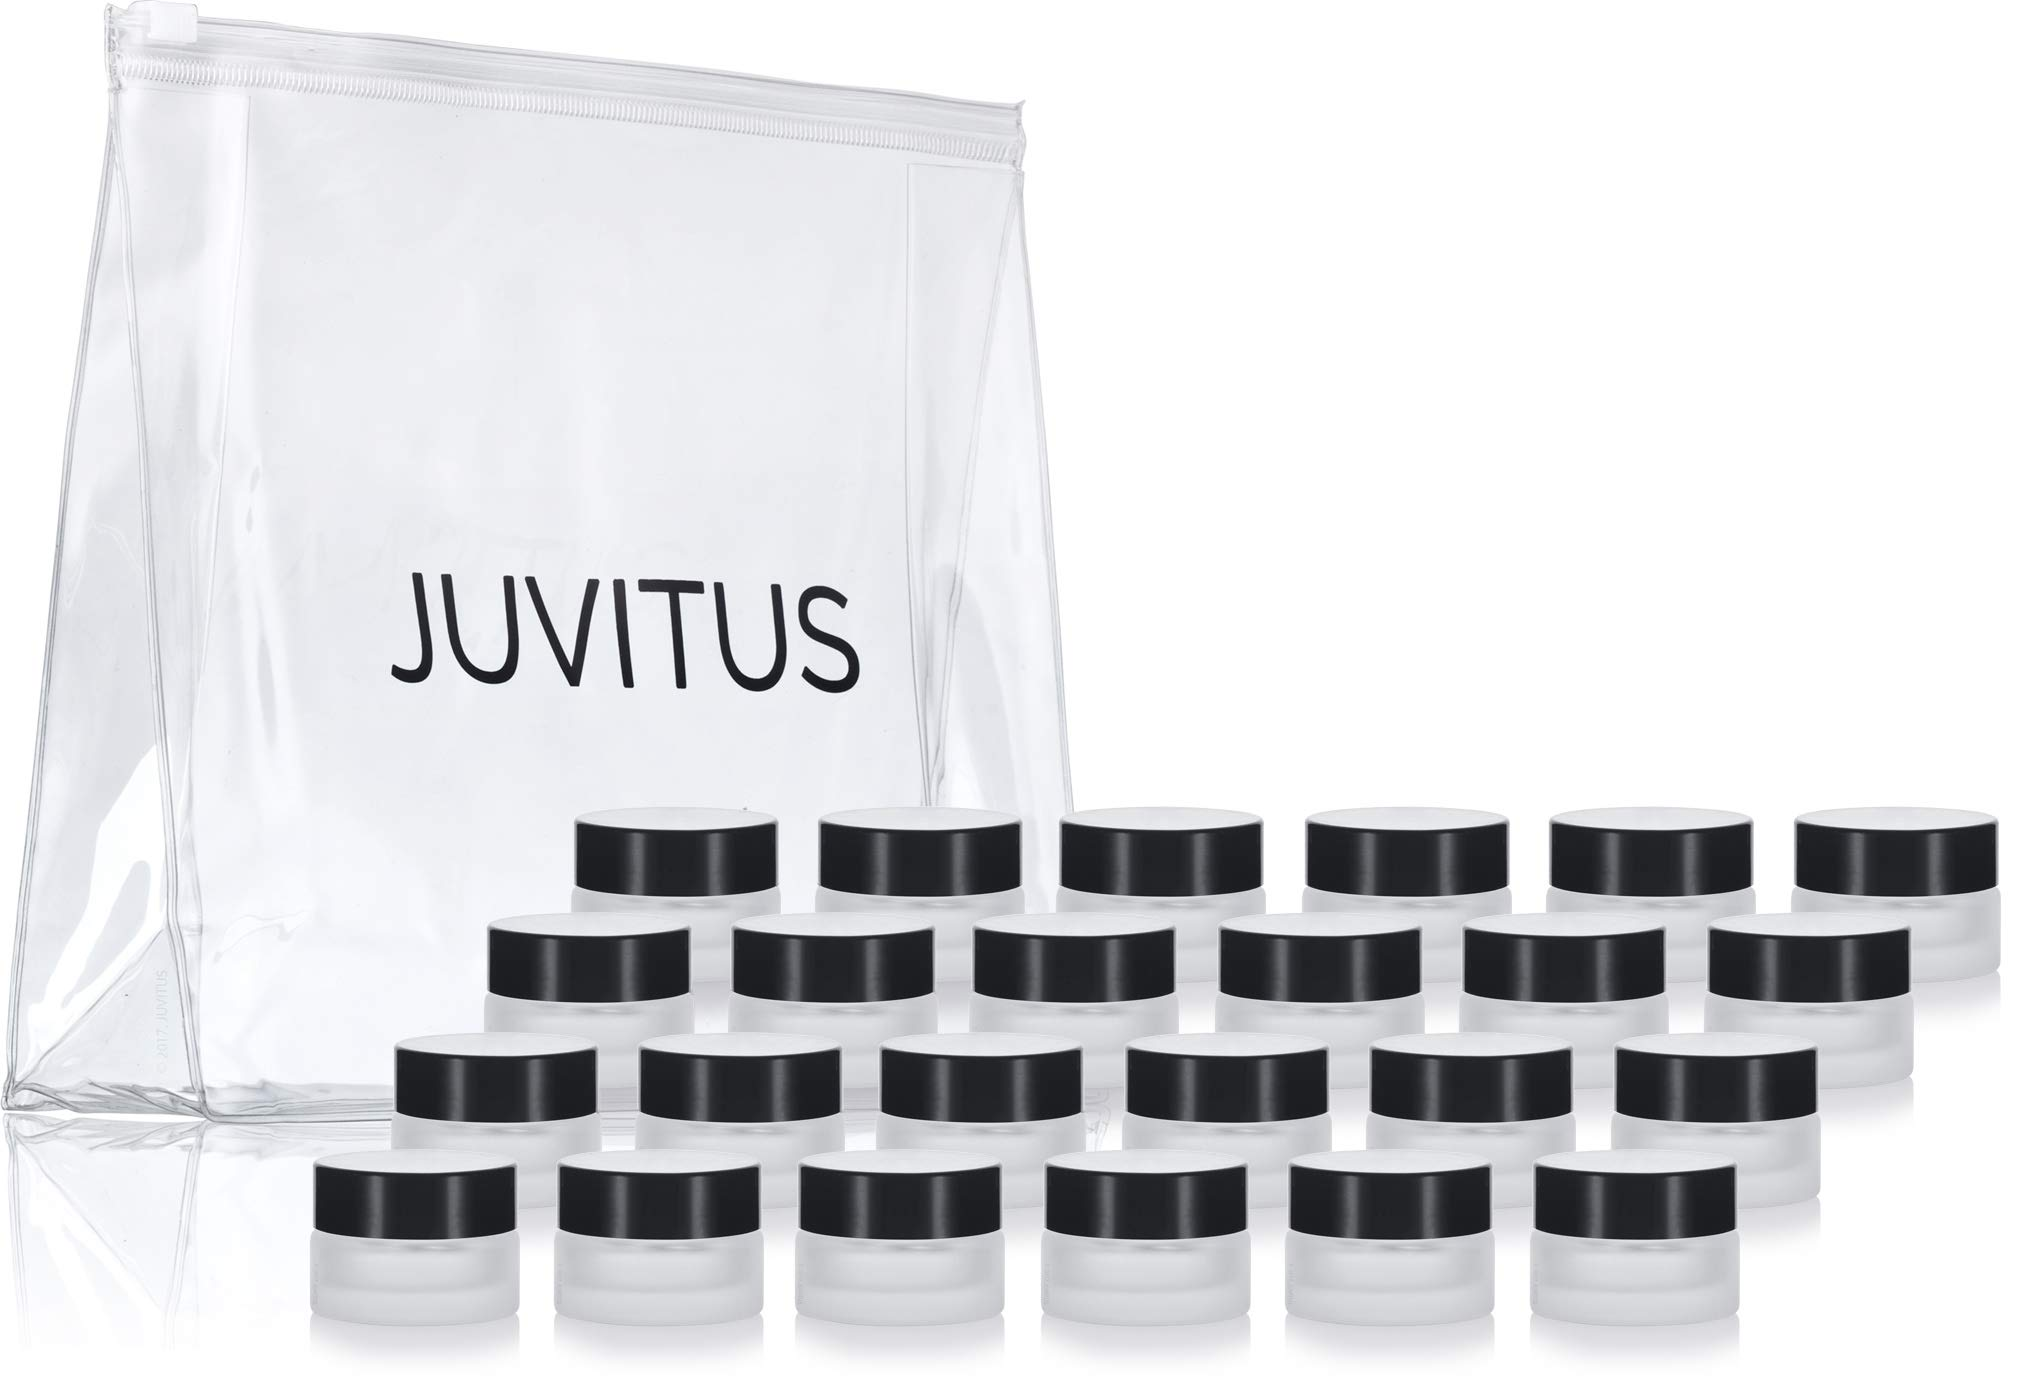 Frosted Clear Glass 5 ml 1/6 oz Small Thick Wall Balm Salve Pot Container Jars with Black Smooth Foam Lined Lids (24 Pack) + Travel Bag